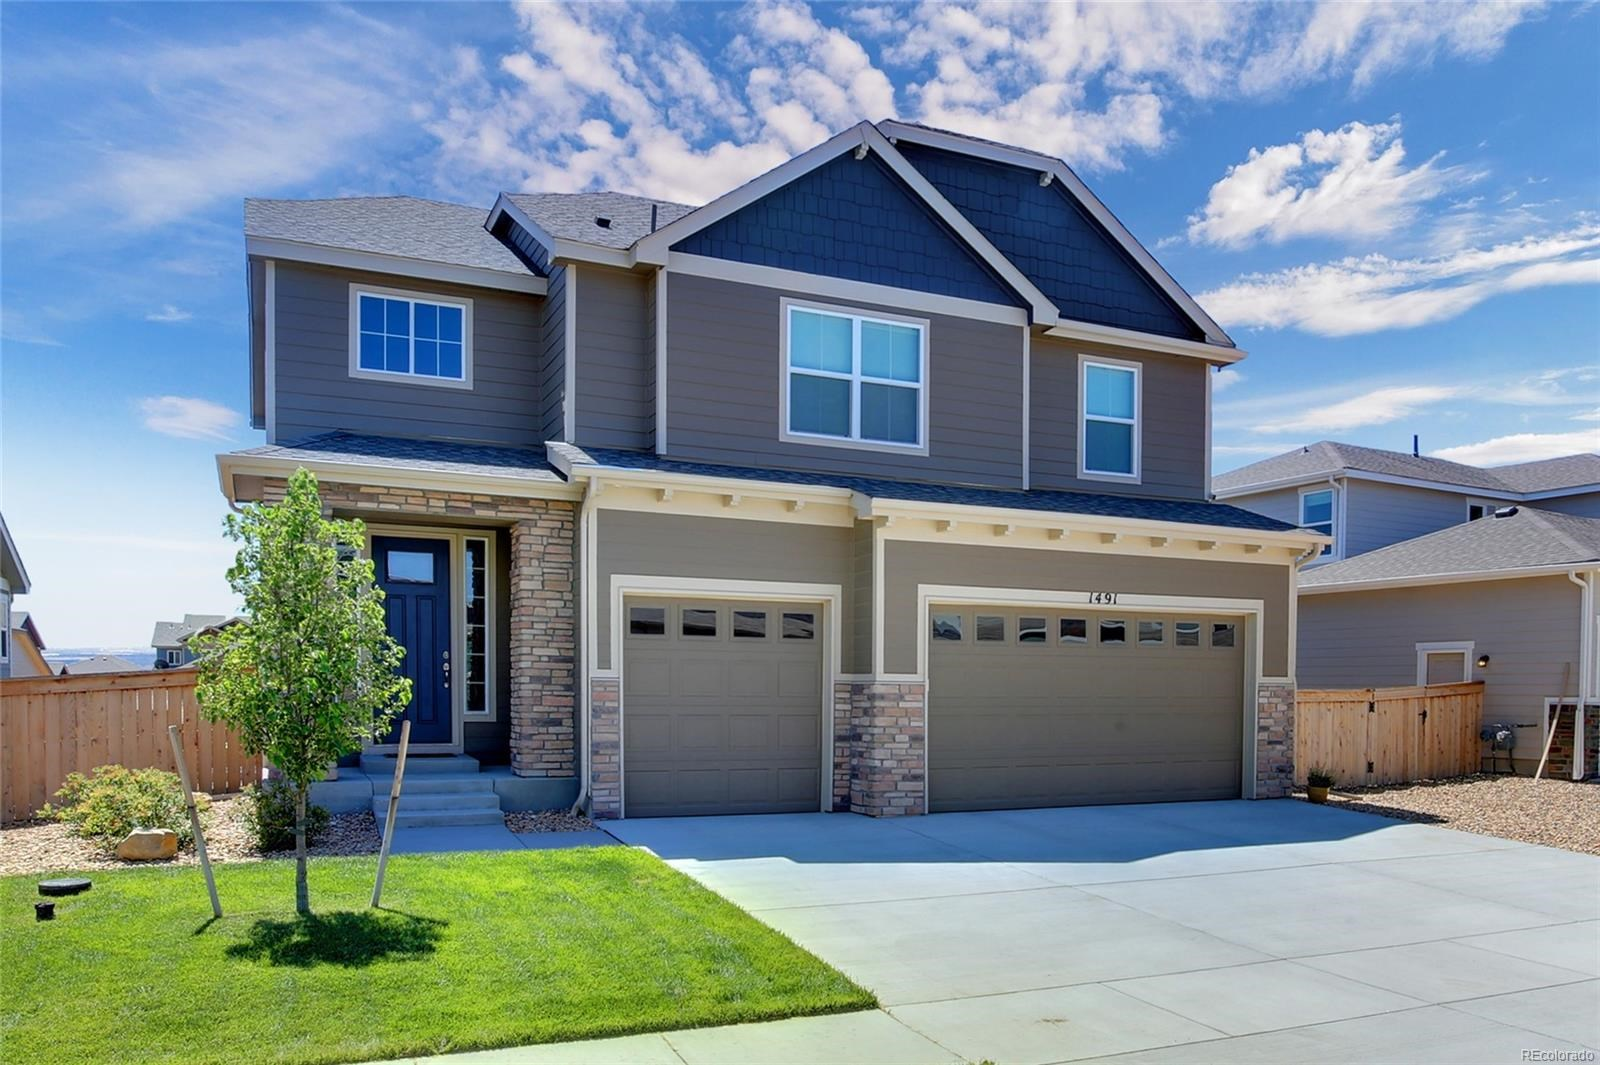 MLS# 4710524 - 3 - 1491 Moraine Valley Drive, Severance, CO 80550